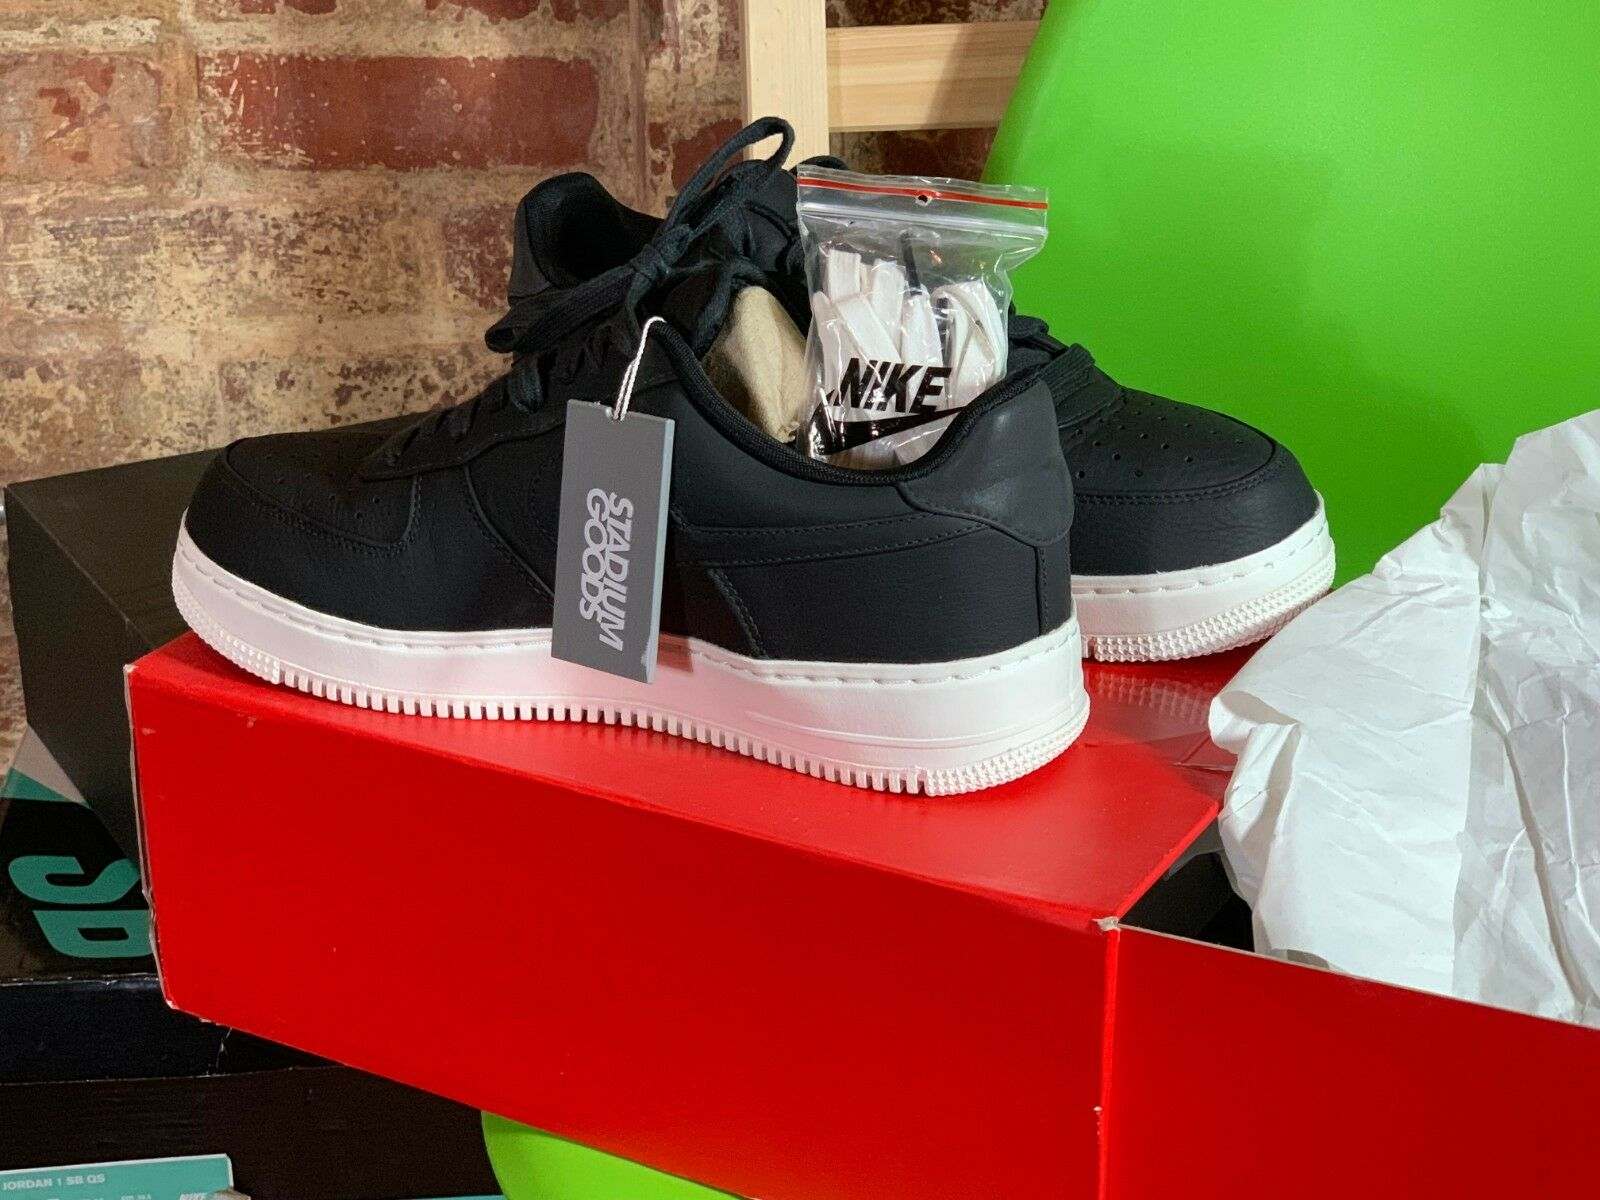 Nike Lab - Air Force 1 - Black - DS - Size  10.5 - @Domingos.Sundays - NYC - 21